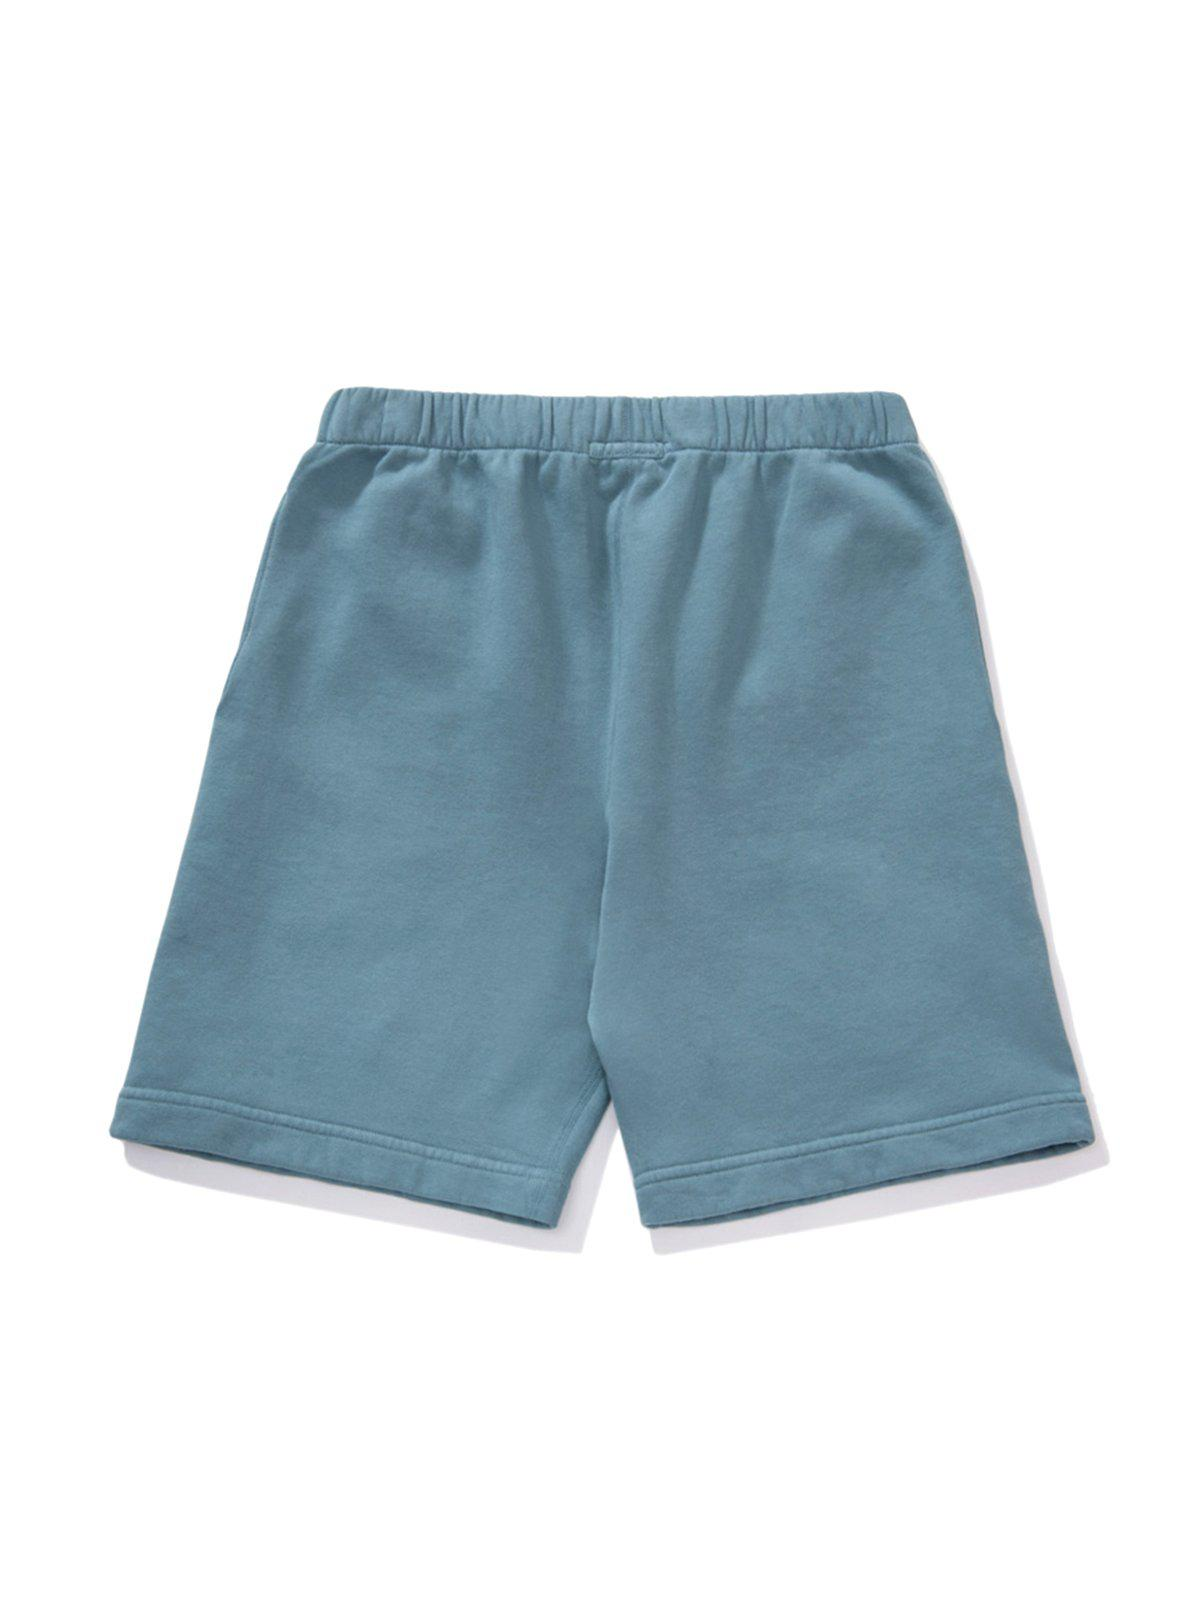 Lady White Co. Sweatshort Culver Blue - MORE by Morello Indonesia